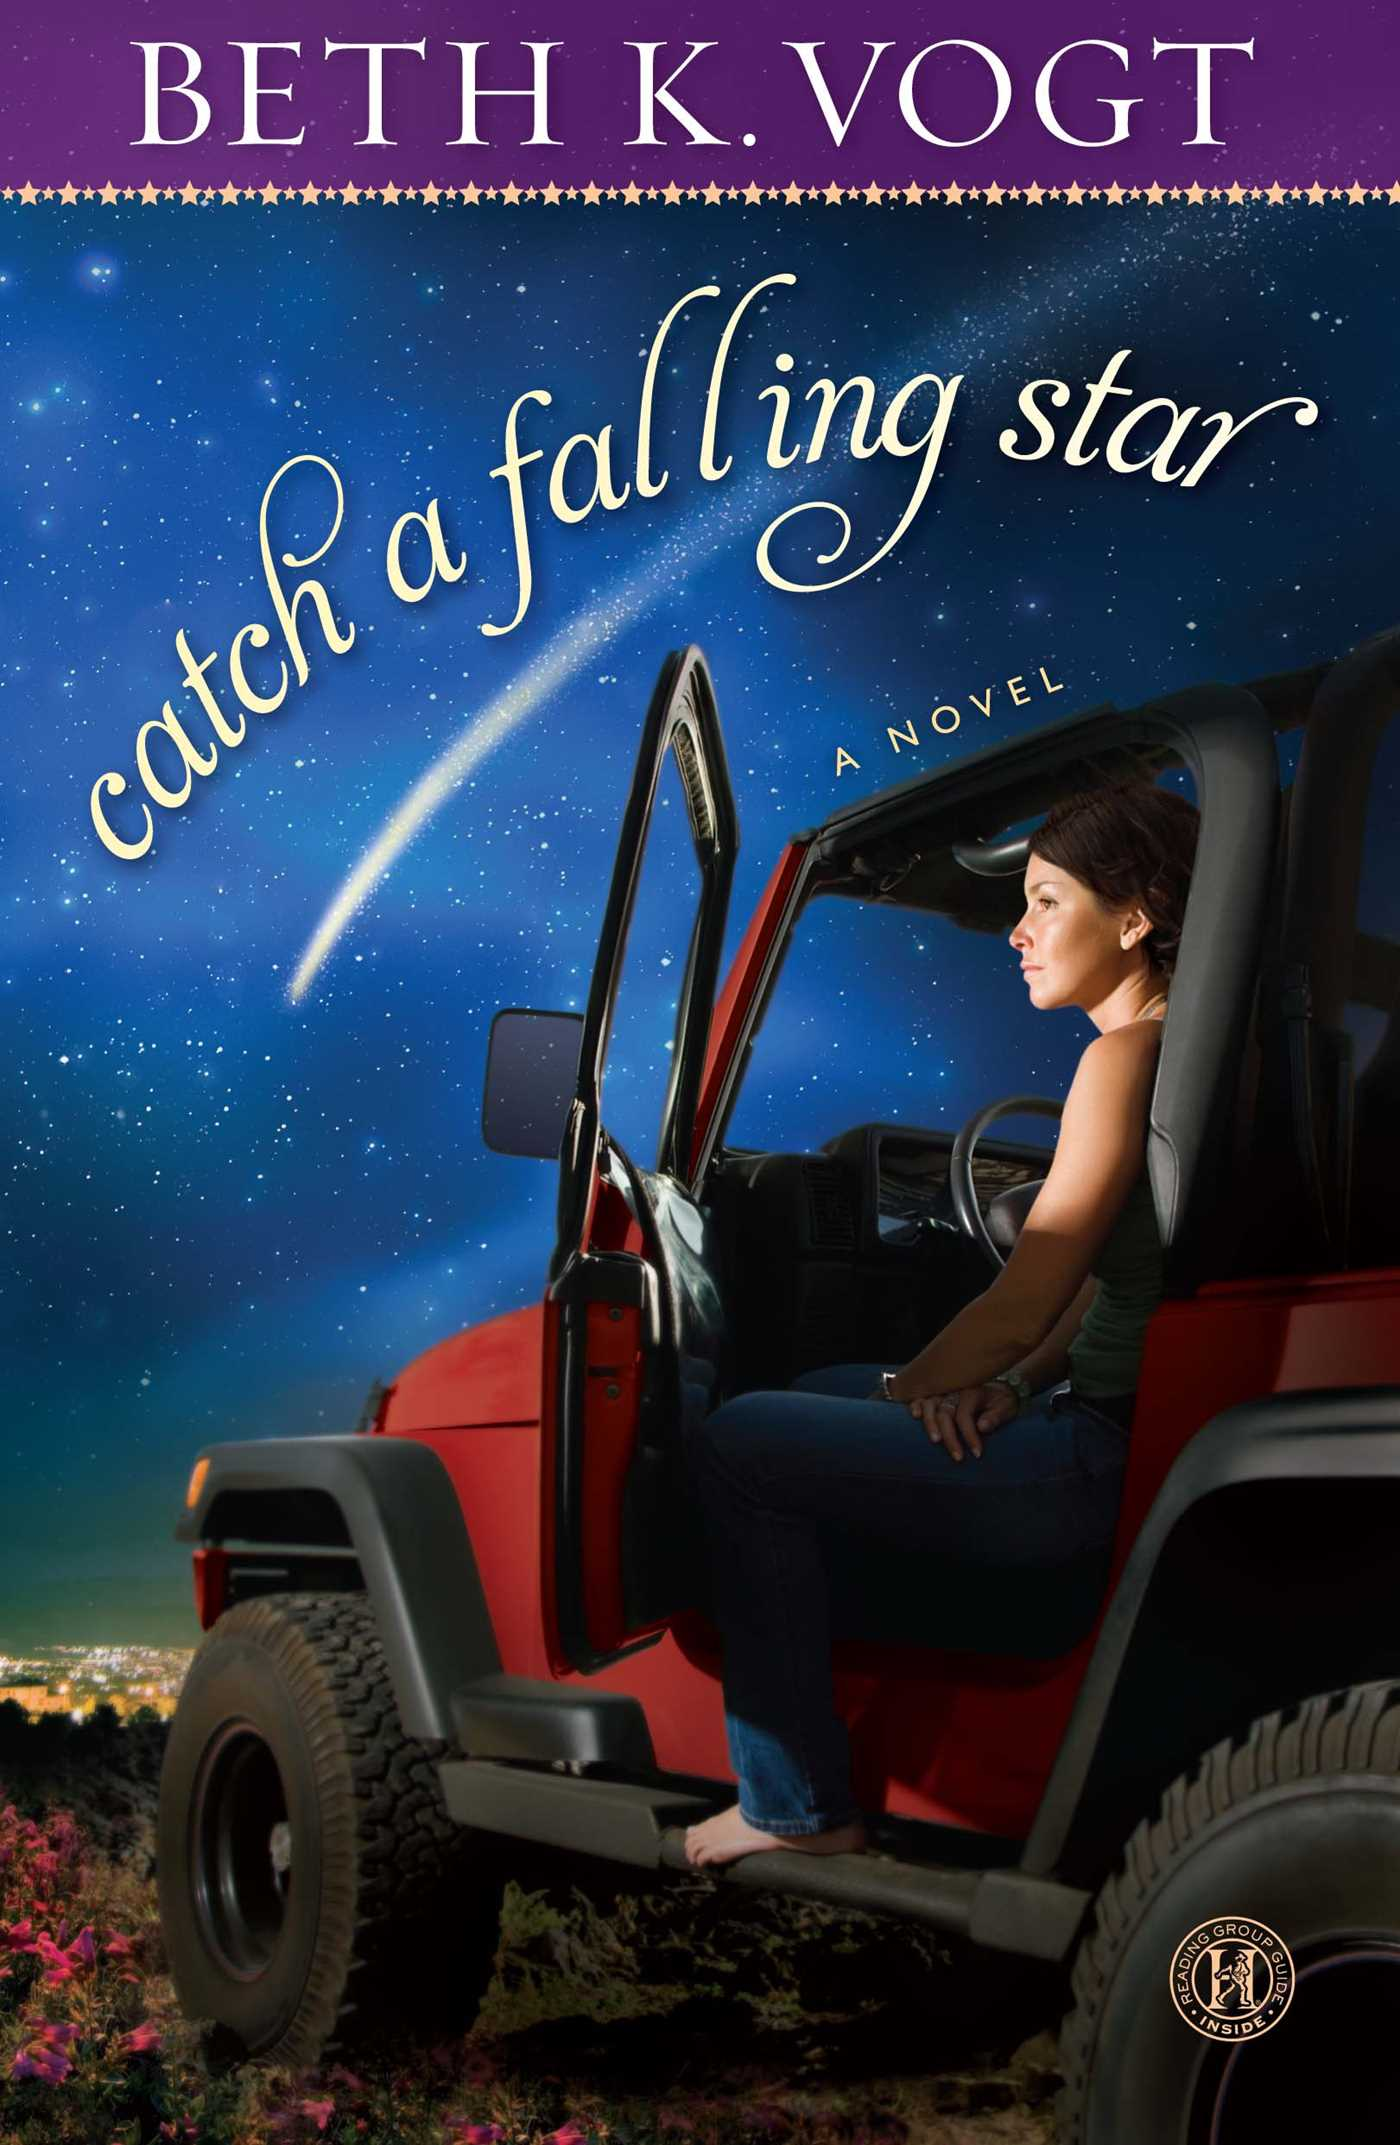 Catch-a-falling-star-9781451660272_hr